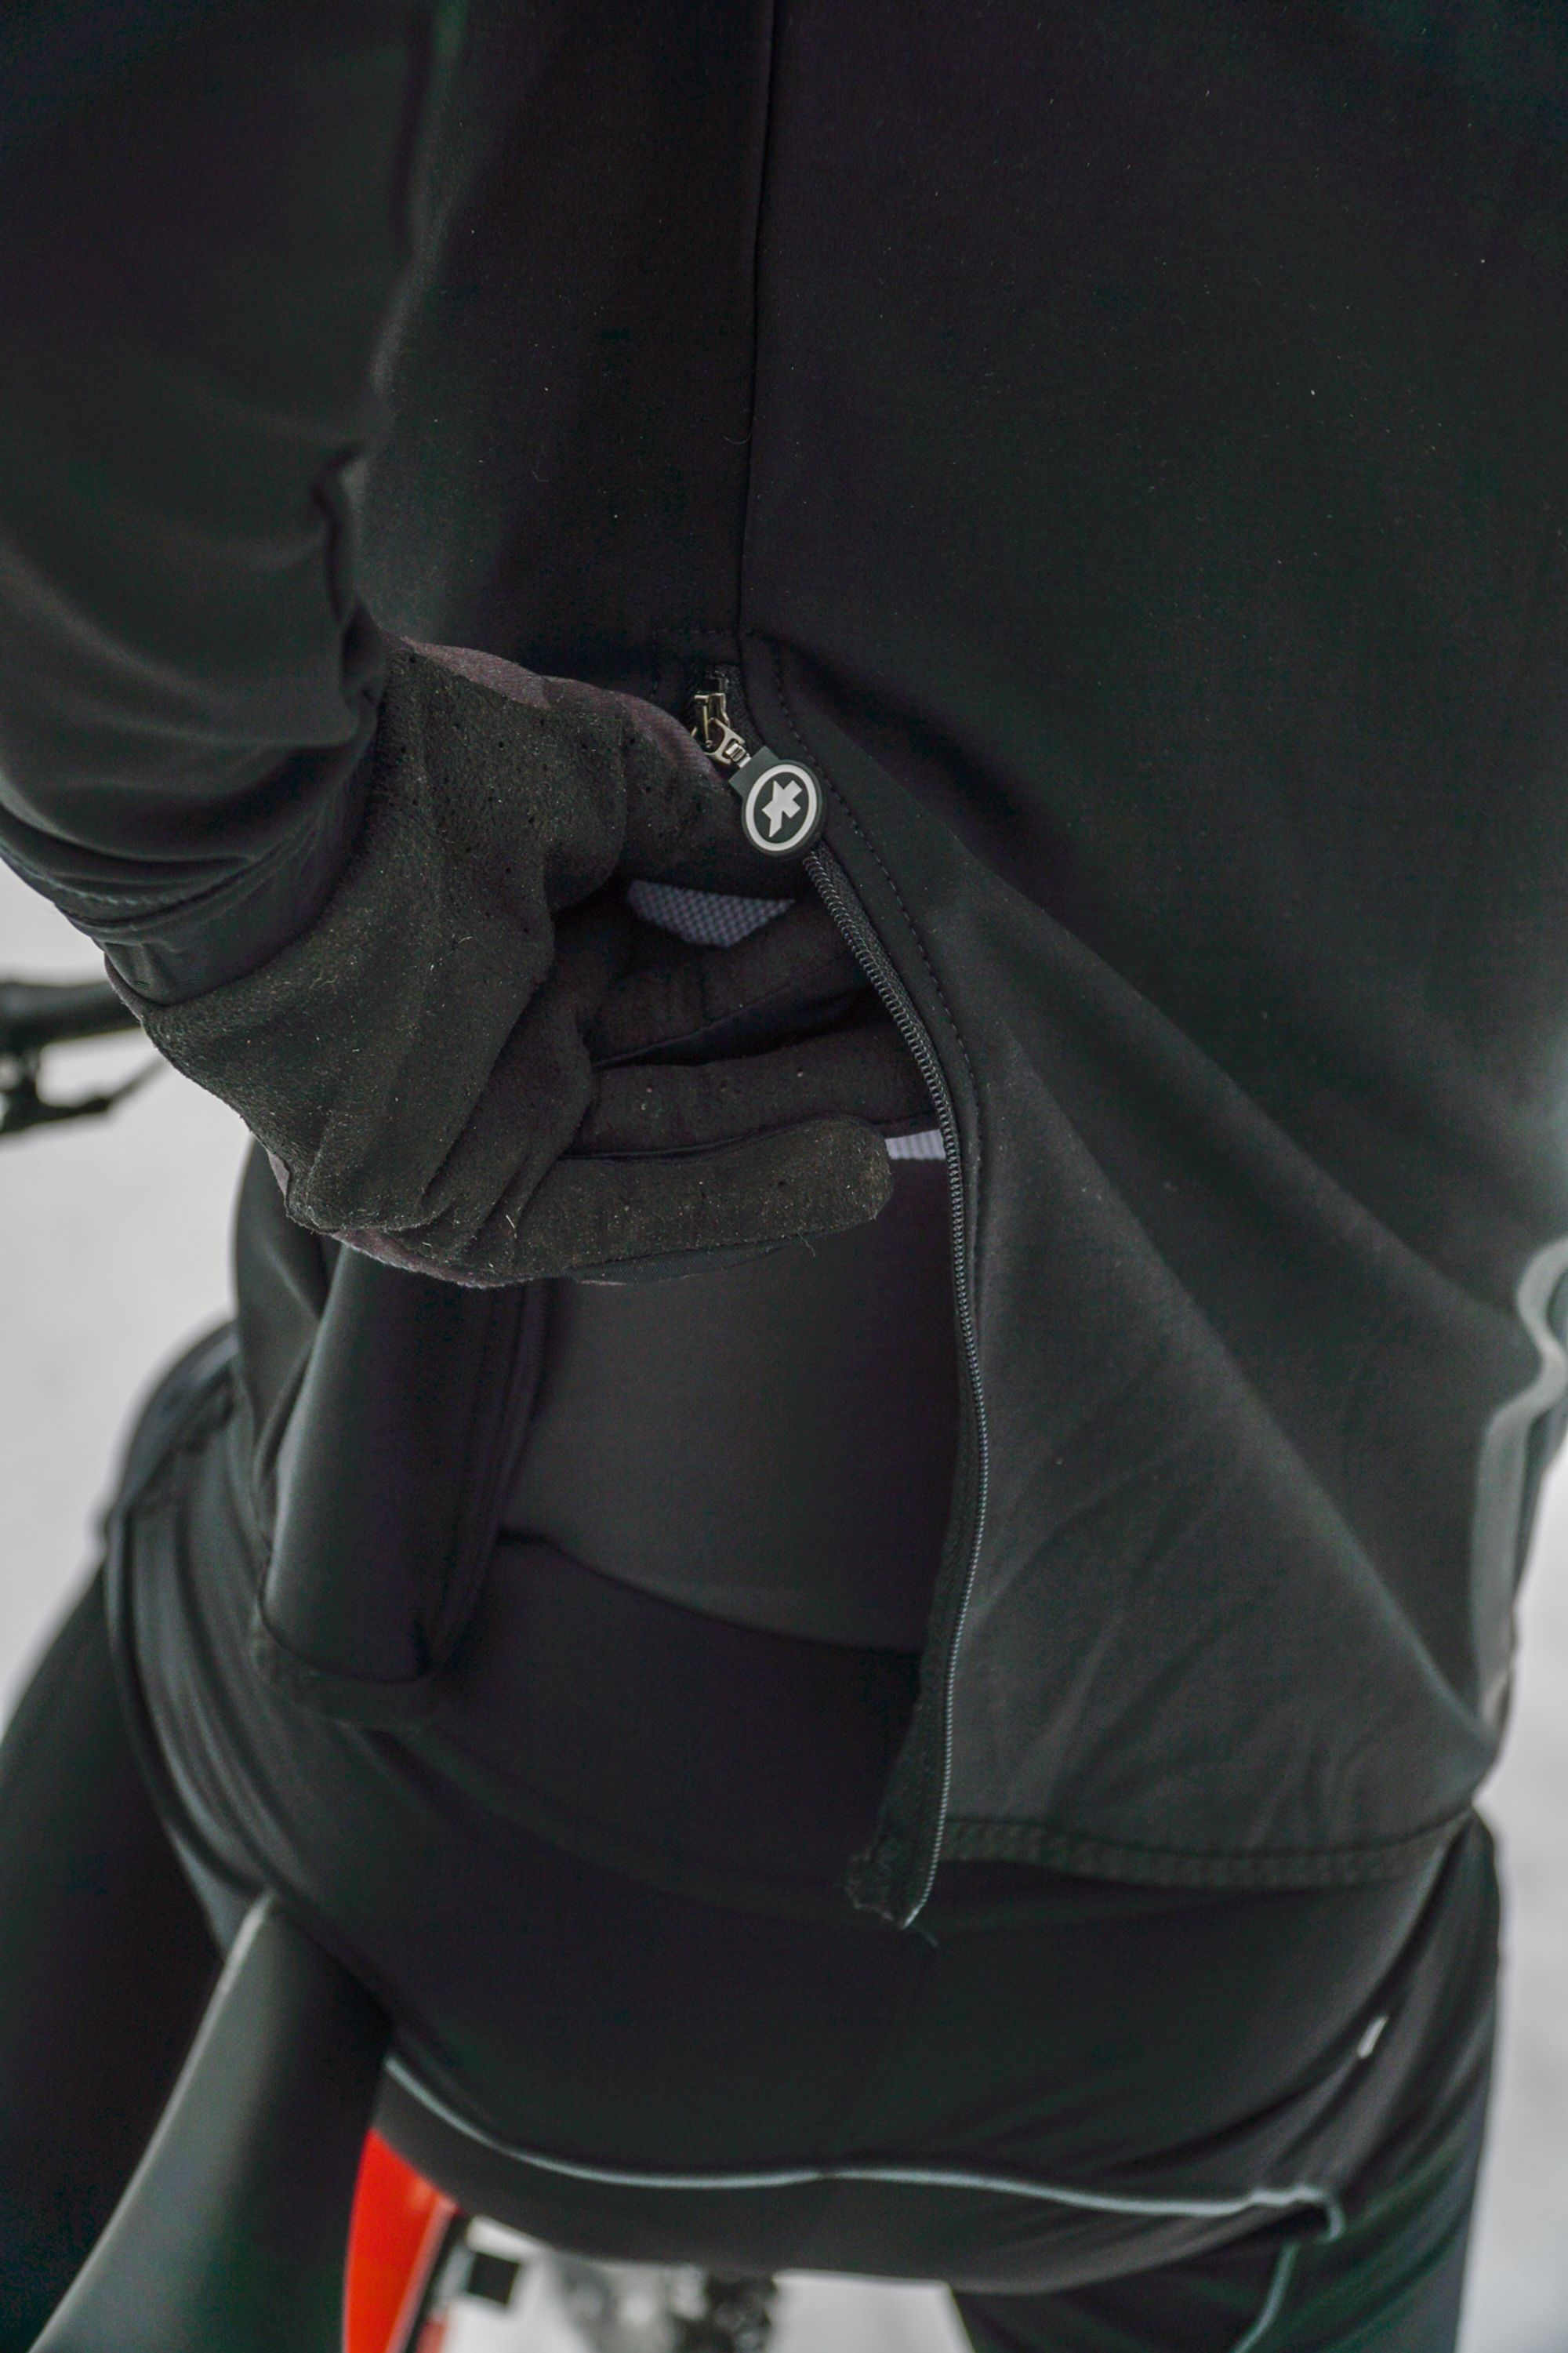 Im Test: Assos Trail Winter Softshell Jacket und Cargo Pants